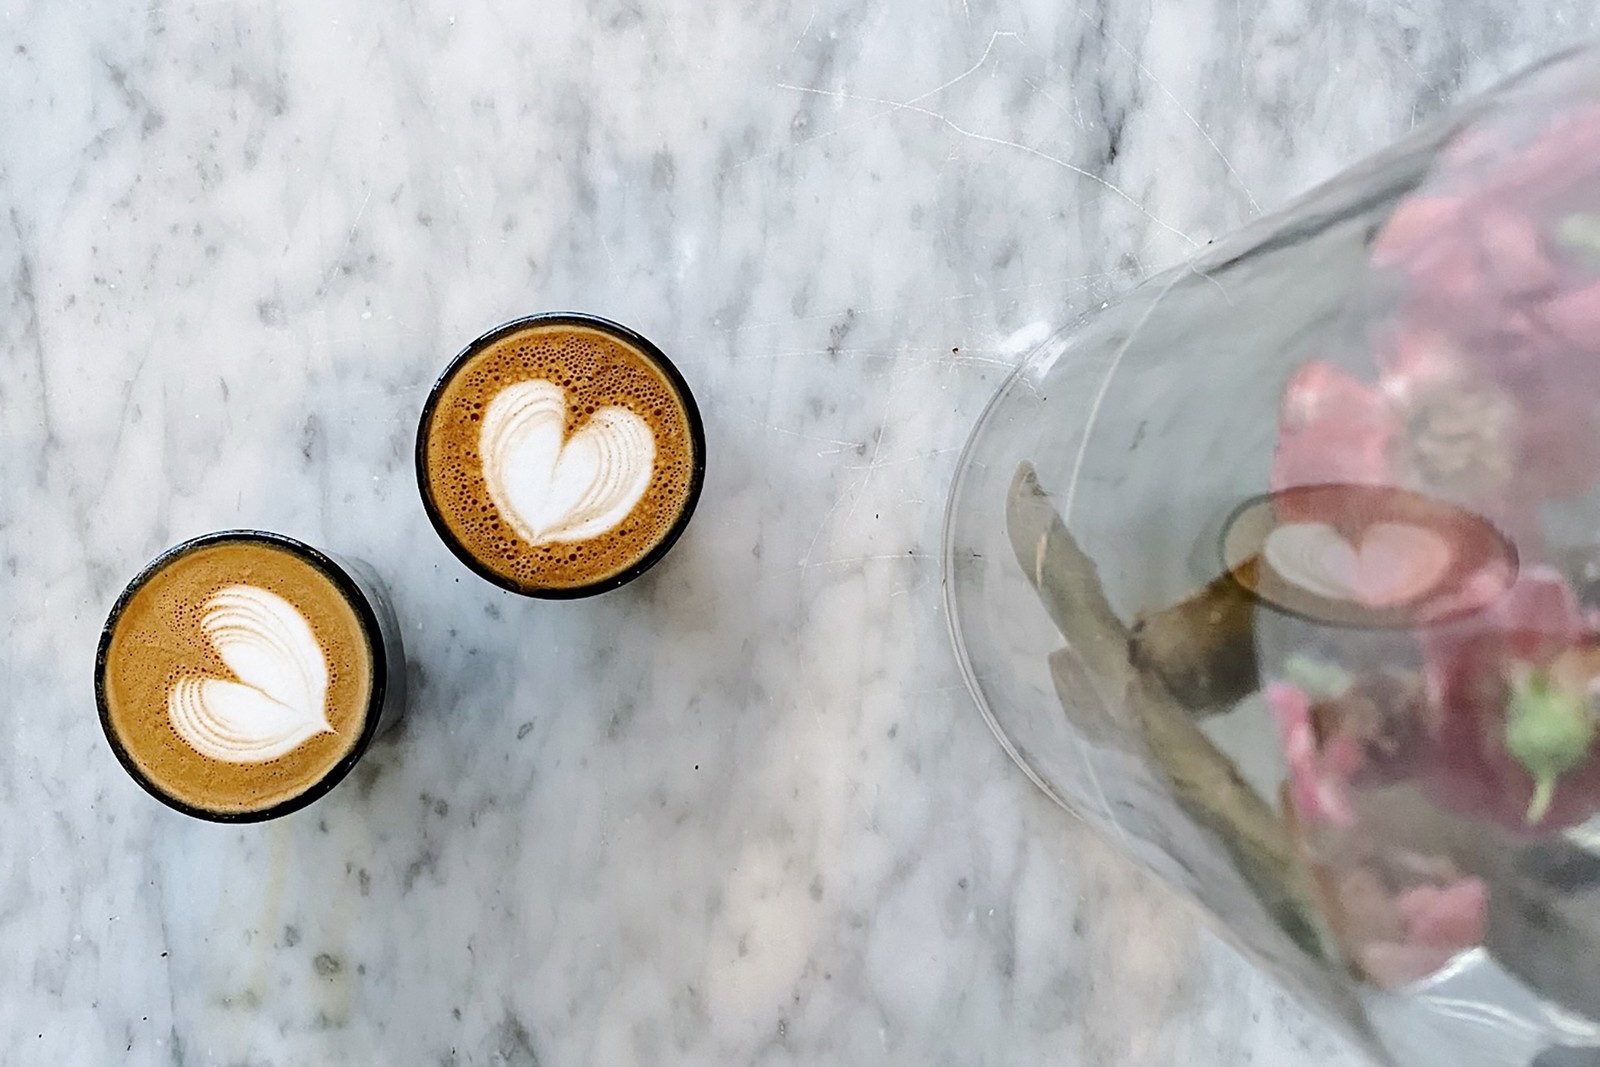 coffee cafe espresso cappuccino latte coronavirus covid 19 aeropress kalita wave foam milk french pour over white noise patent manhattan new york city brooklyn queens john yoon vanessa kim emily williams barista gofundme support instagram